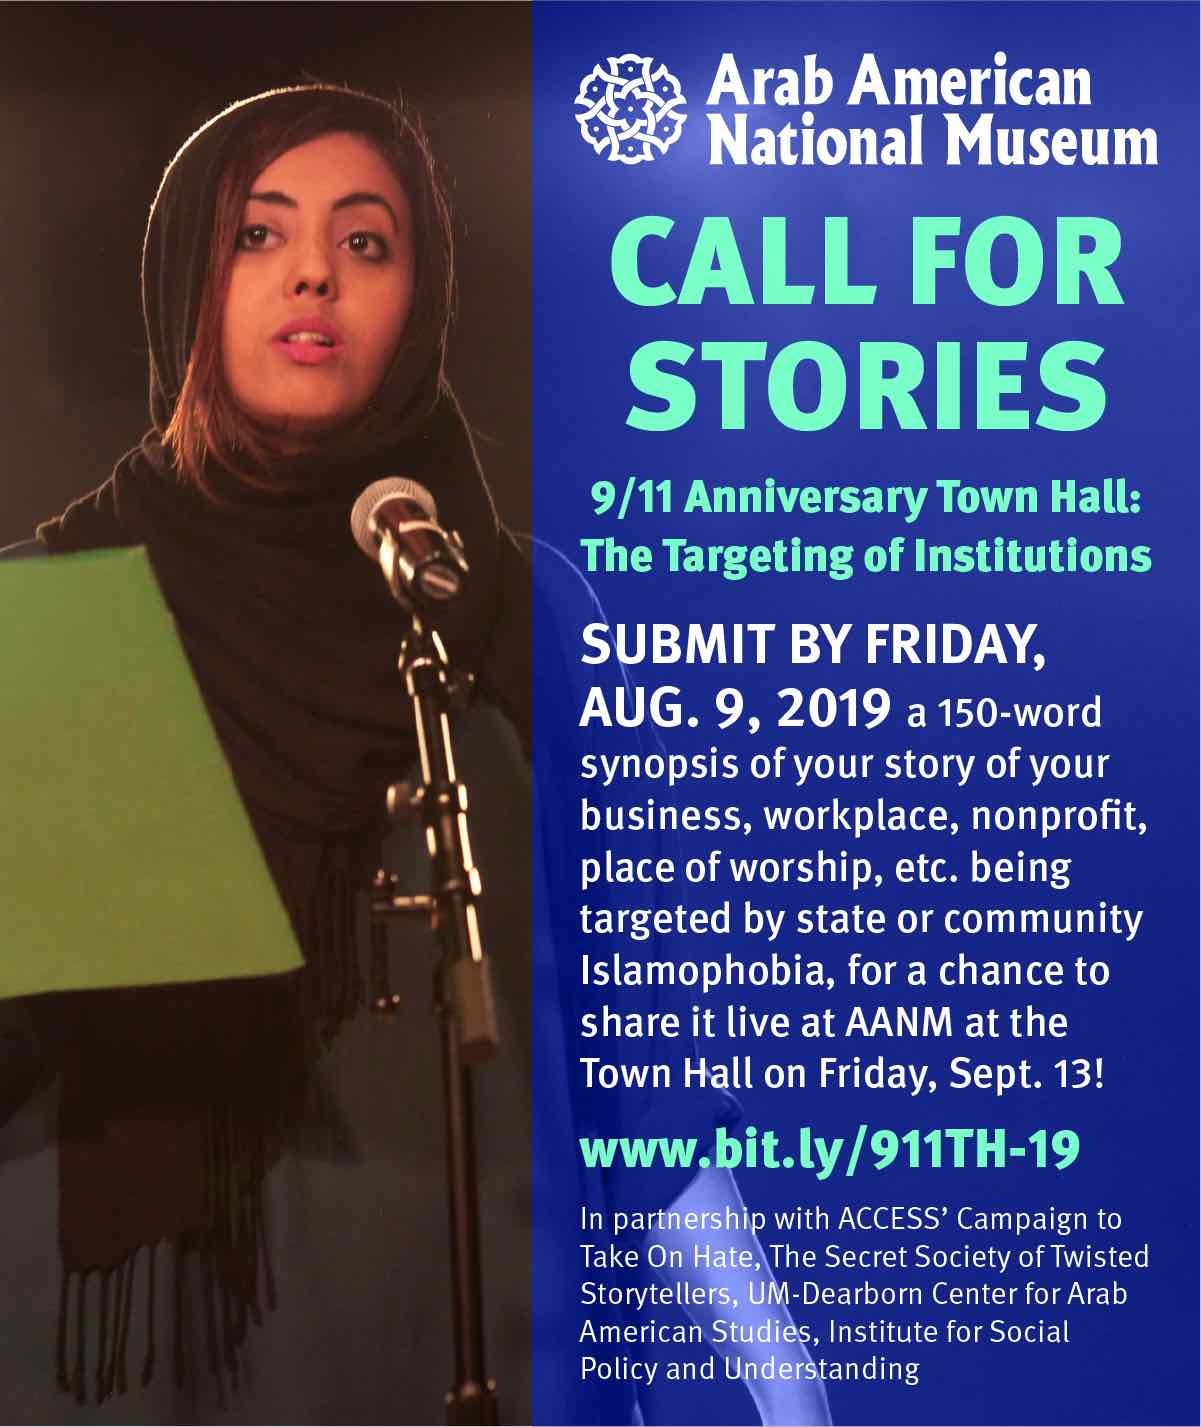 Call for Stories: Submit by Friday, August 9, 2019 a 150-word synopsis of your story of your business, workplace, nonprofit, place of worship, etc. being targeted by state or community Islamophobia, for a change to share it live at the Arab American National Museum at the Town Hall on Friday, Sept. 13